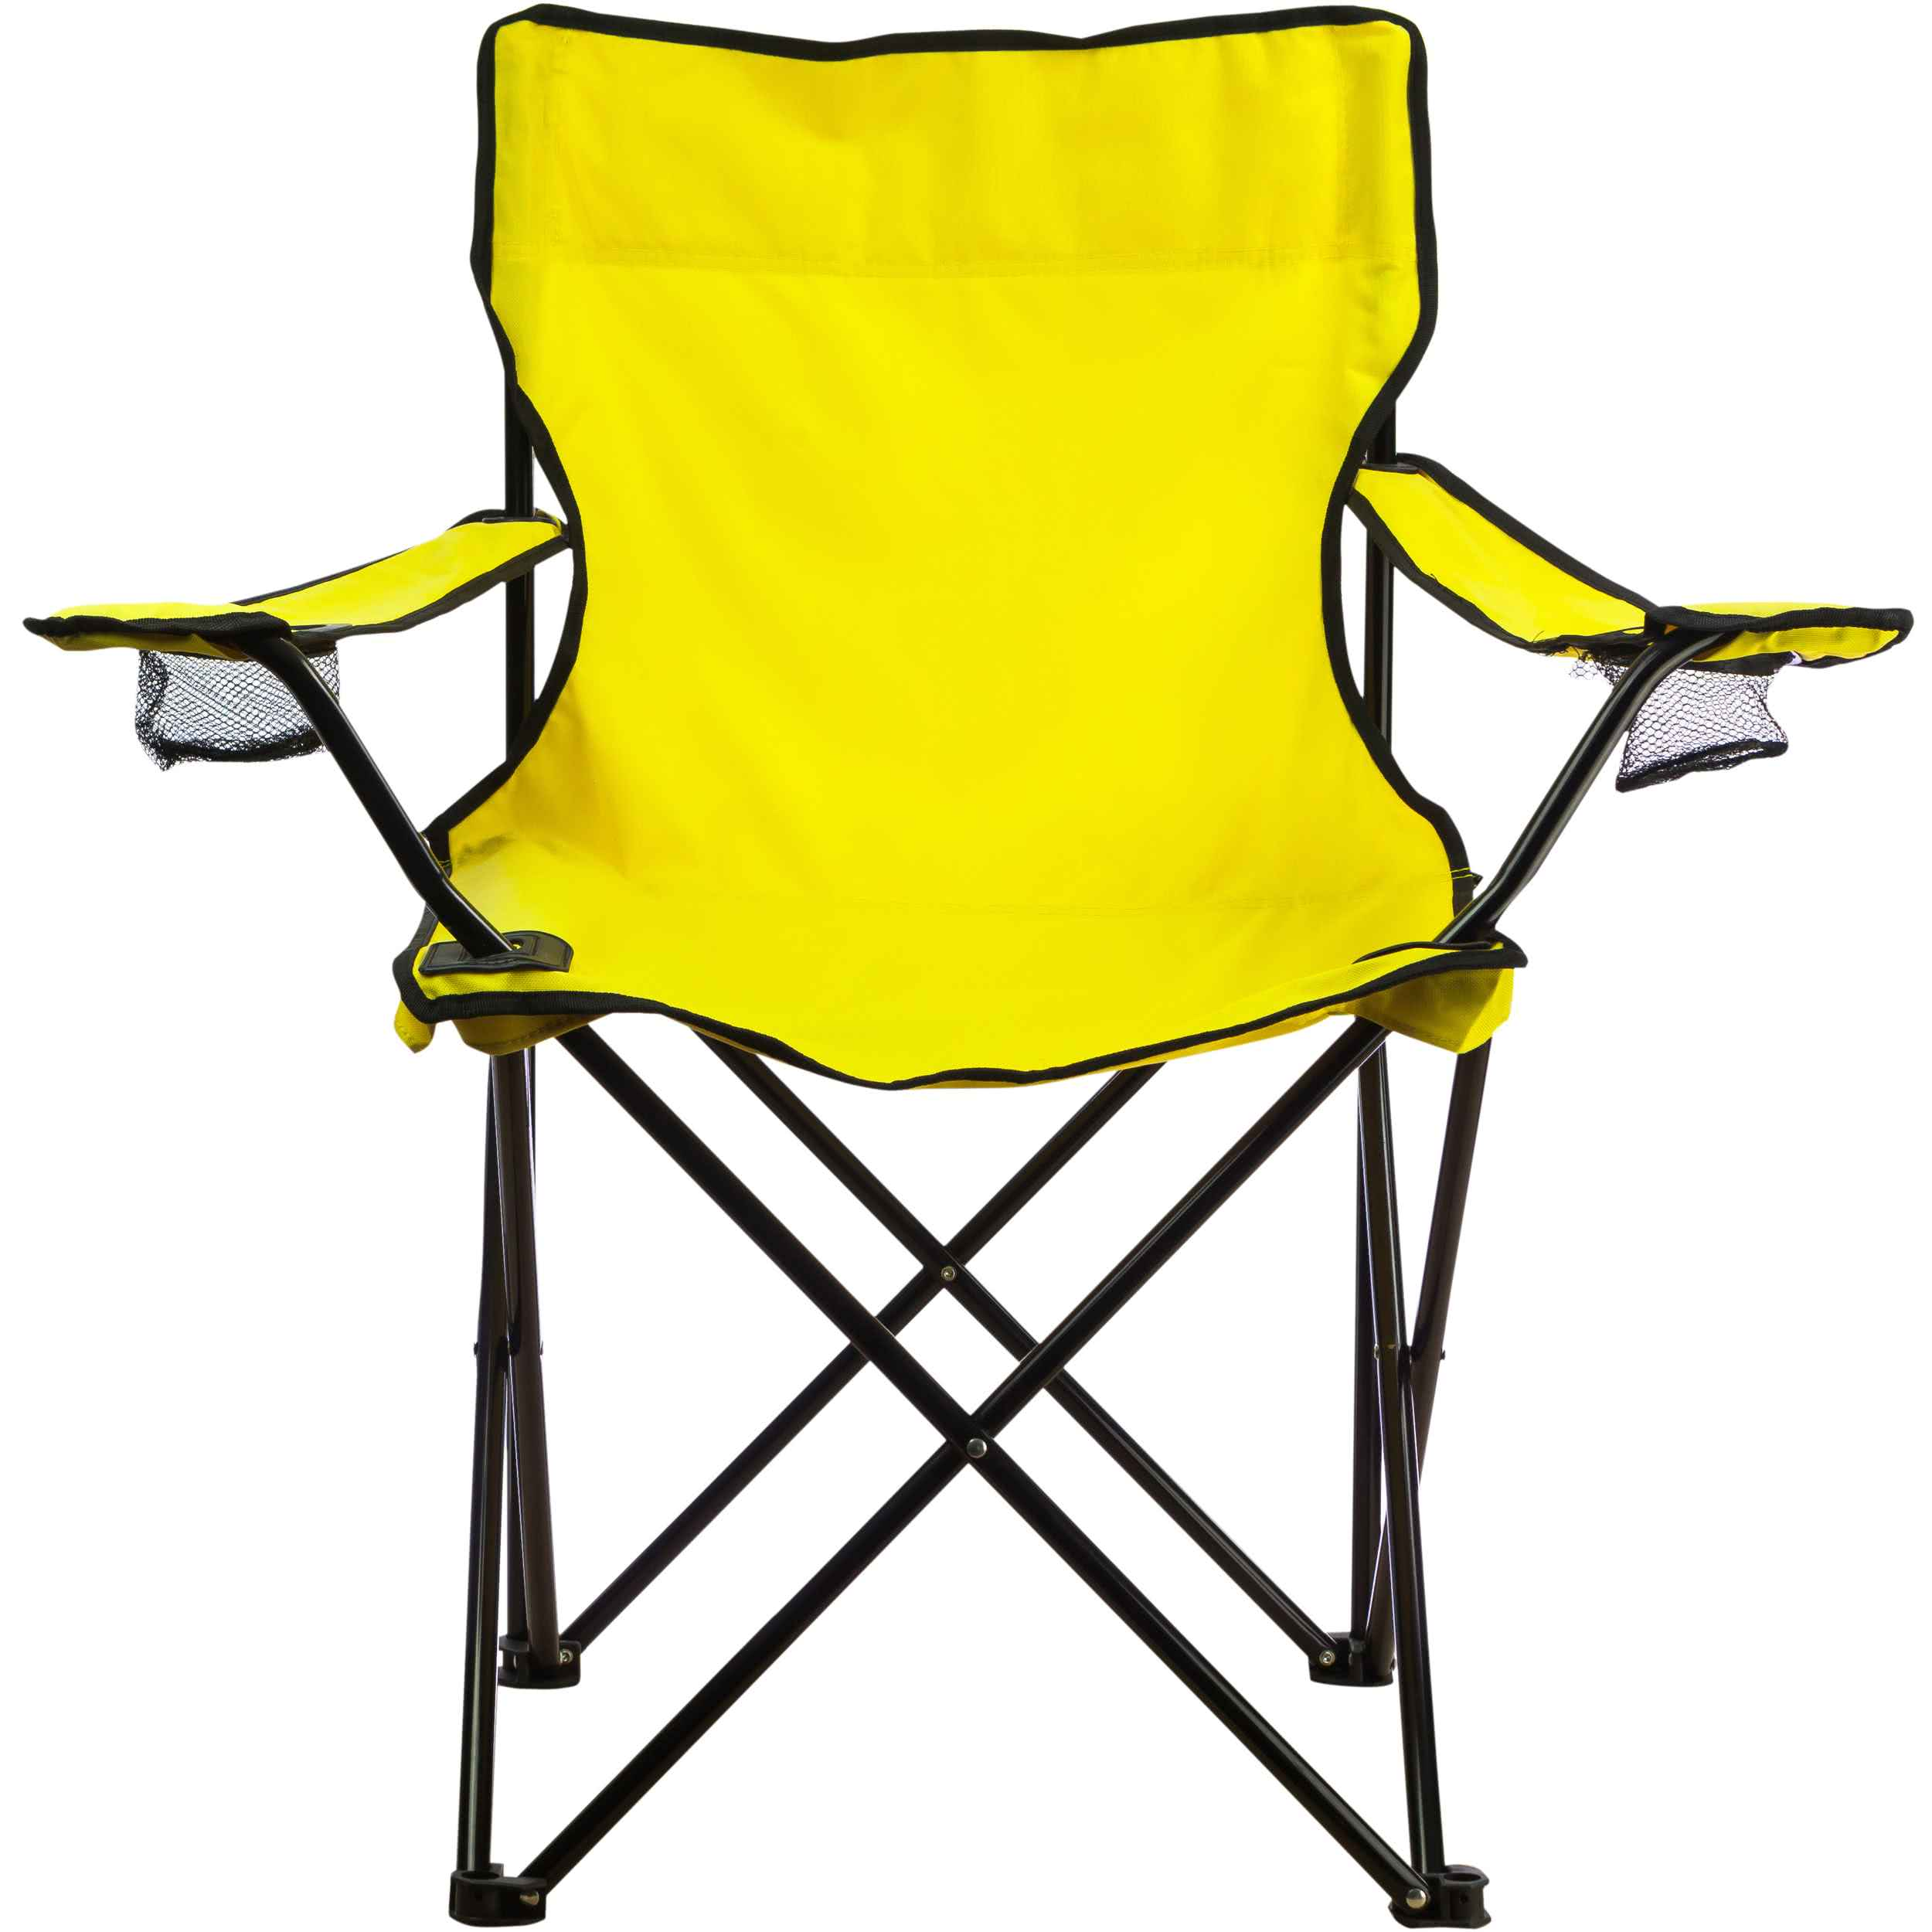 Chair clipart folding chair. Promotional with carrying bags